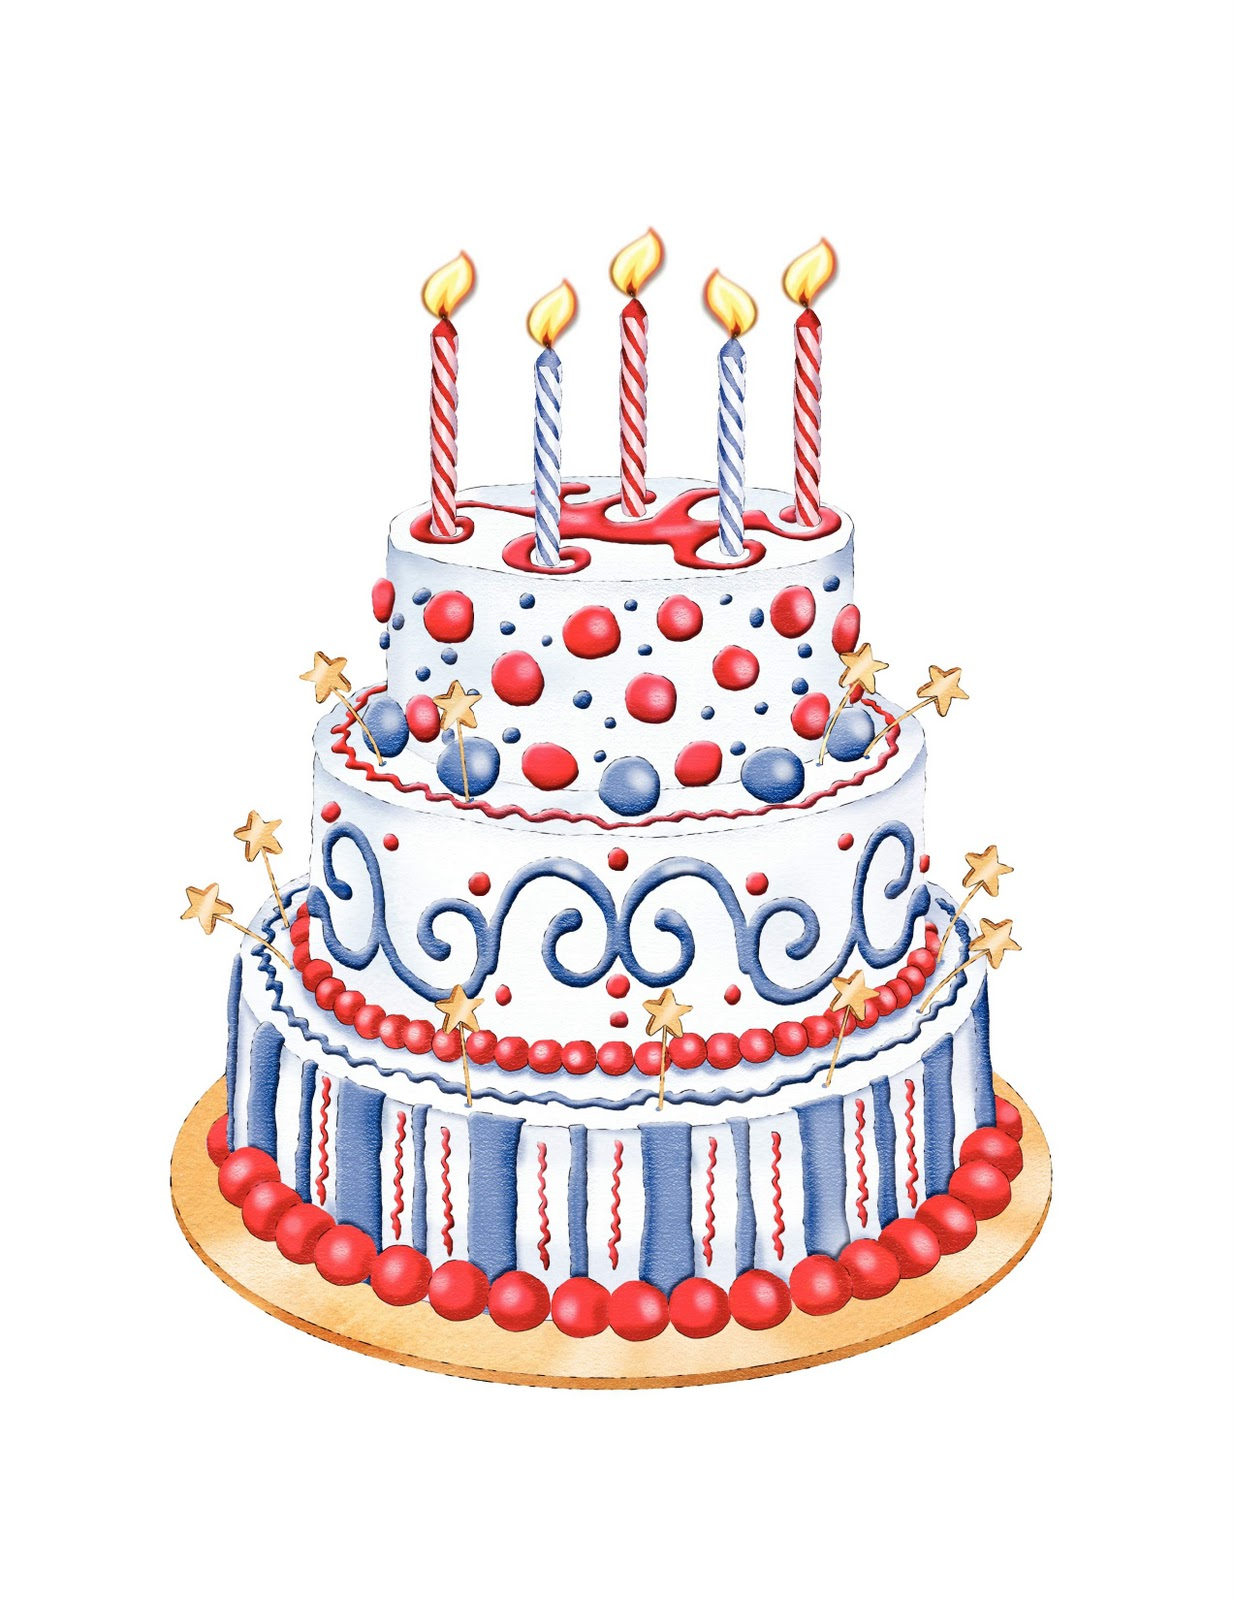 Cake Pictures Birthday Free : Birthday Cake Free Clipart Birthday Cake Trends ...